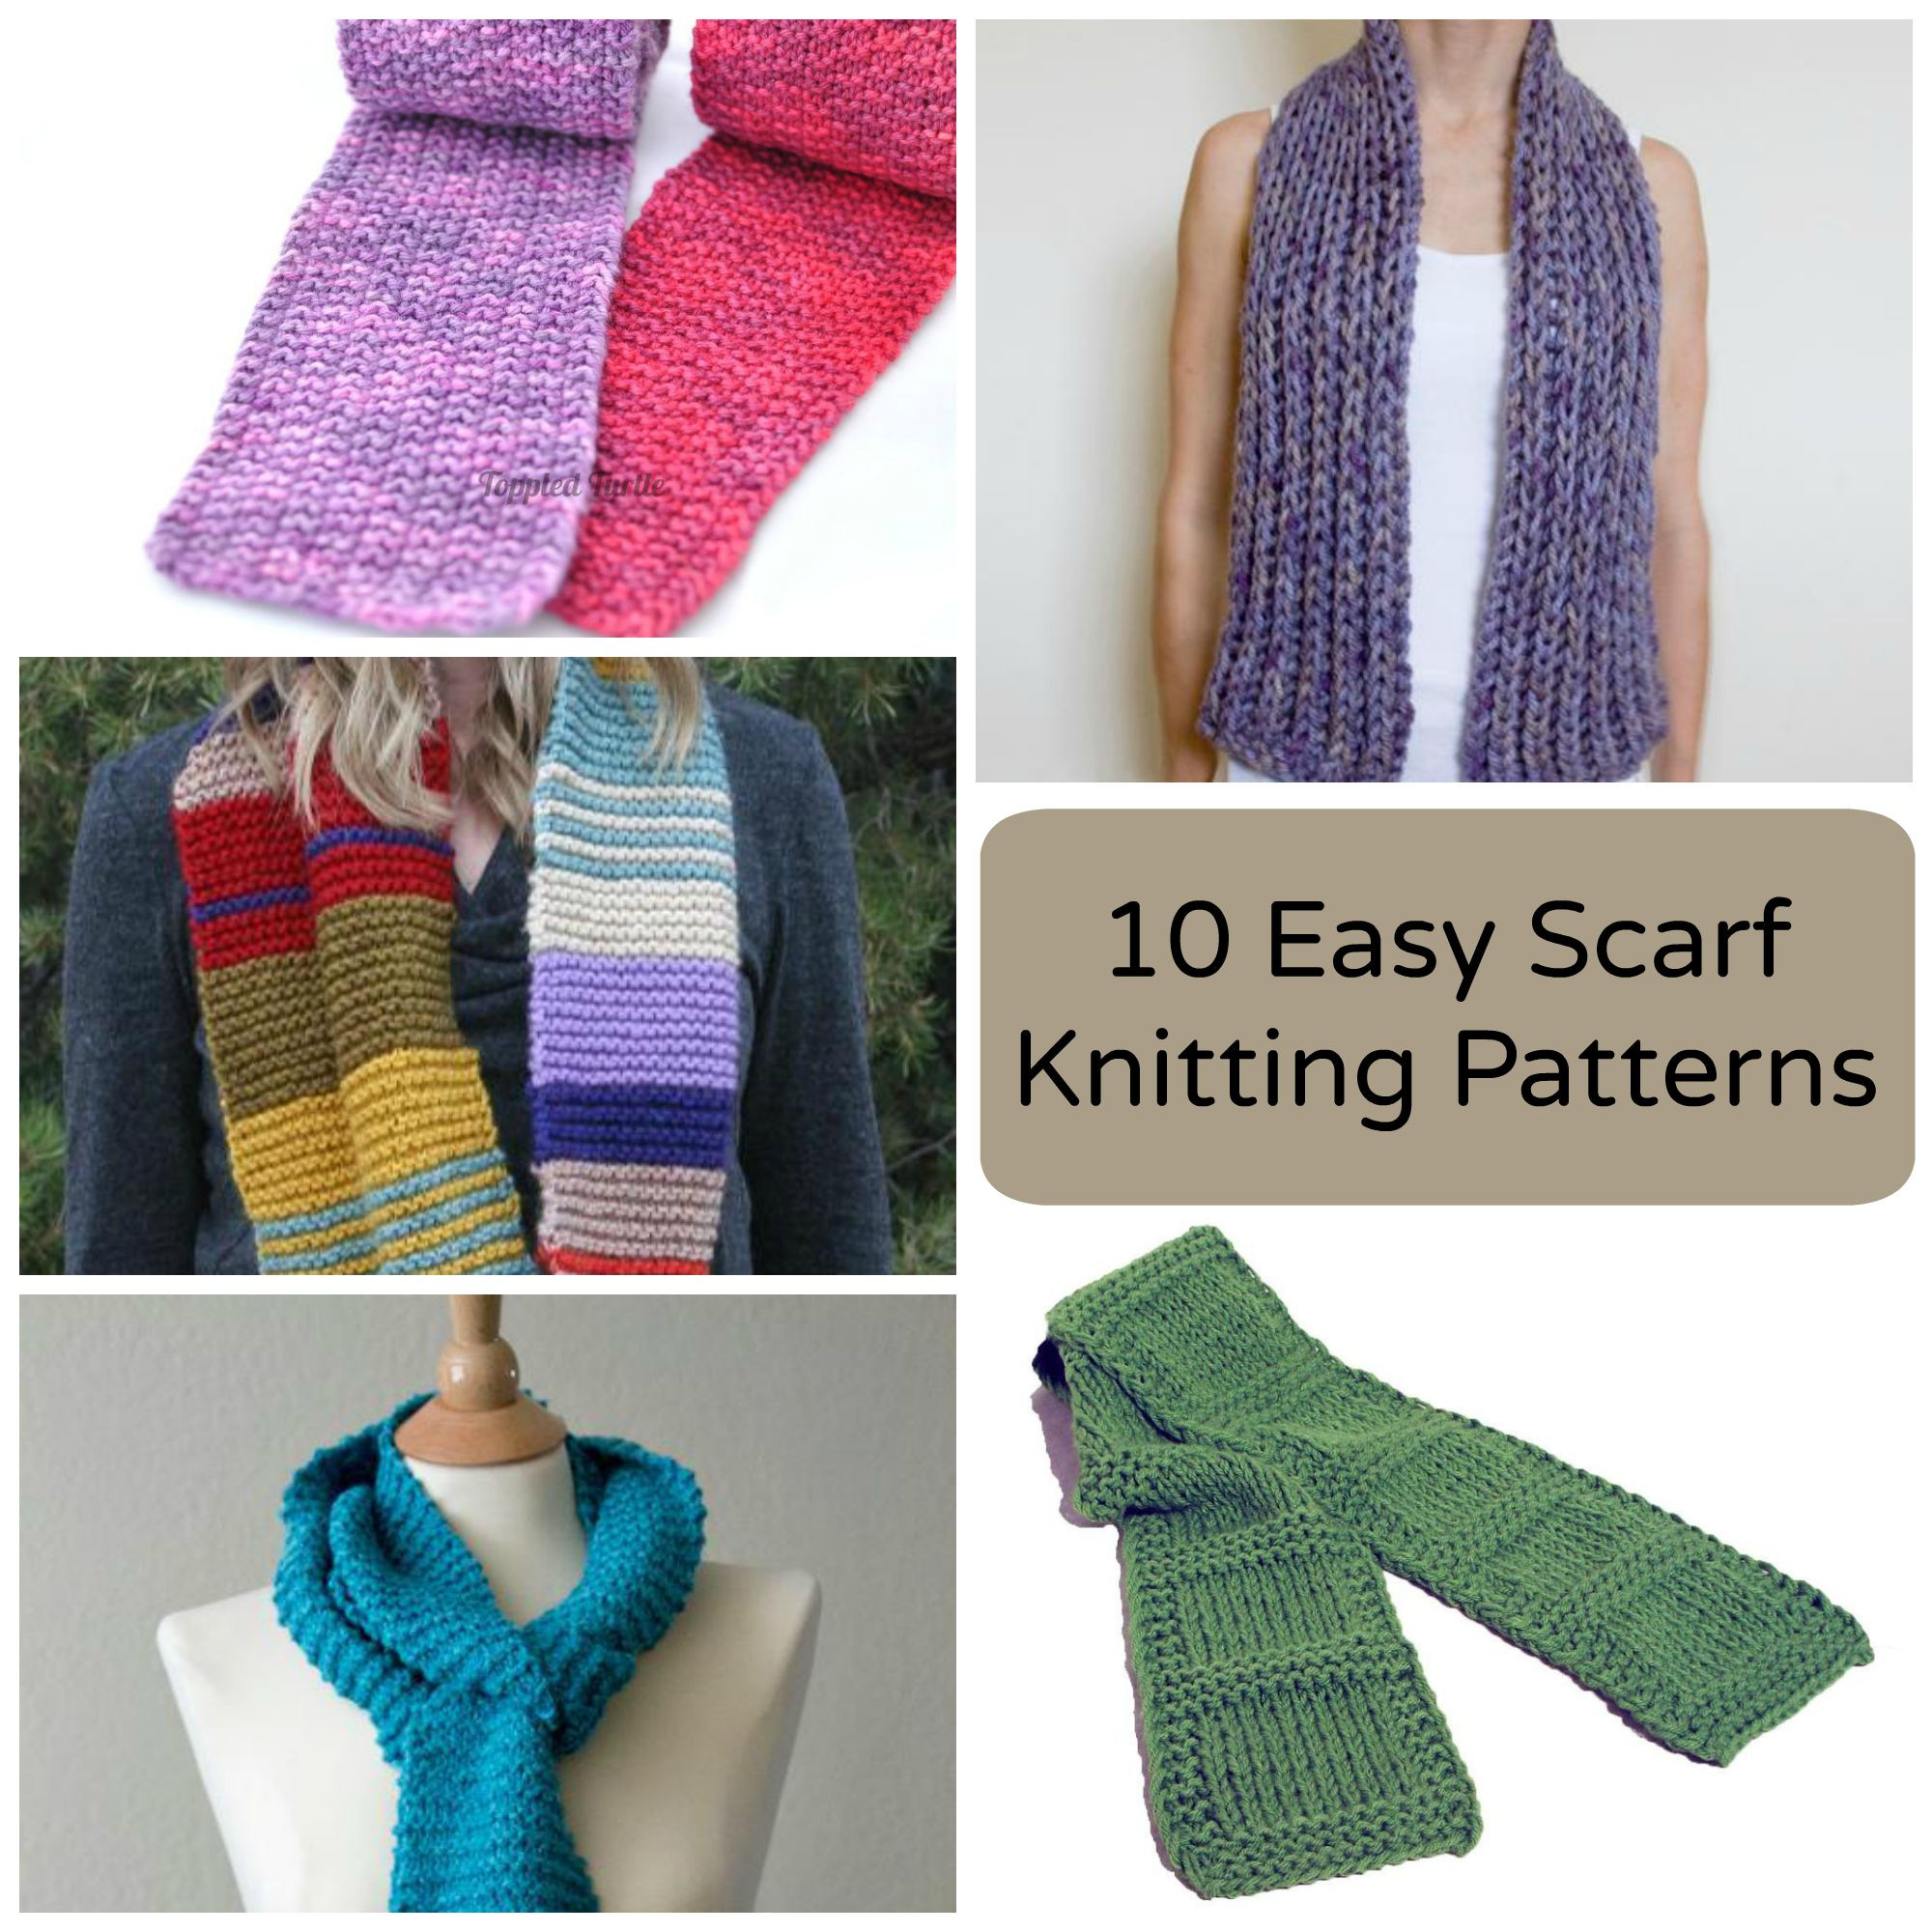 10 Easy Scarf Knitting Patterns for Beginners